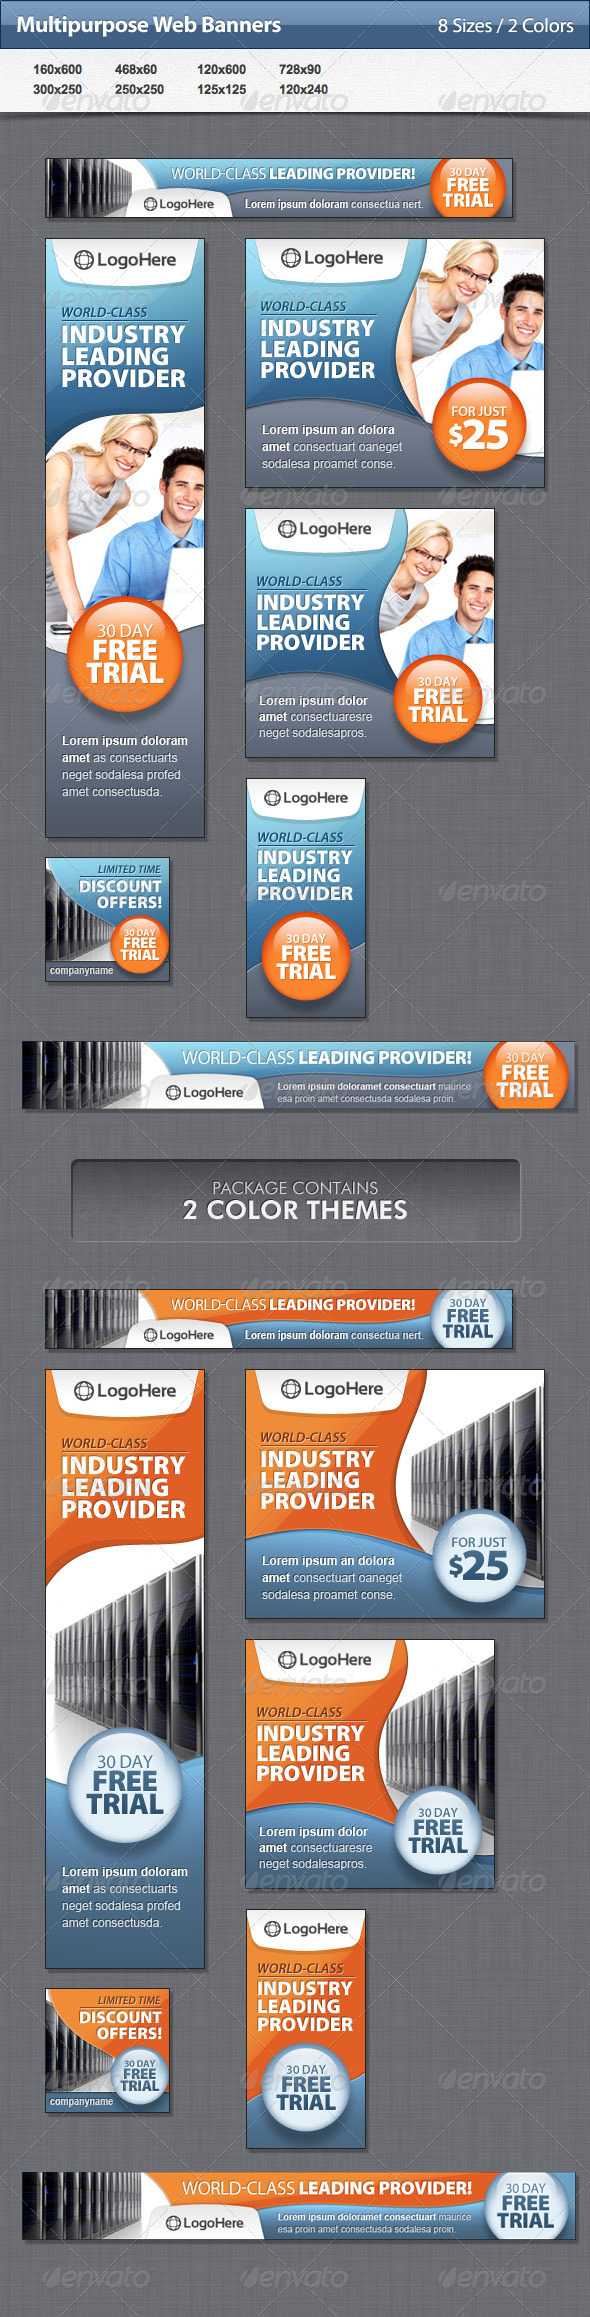 GraphicRiver Multipurpose Web Banners 4772739